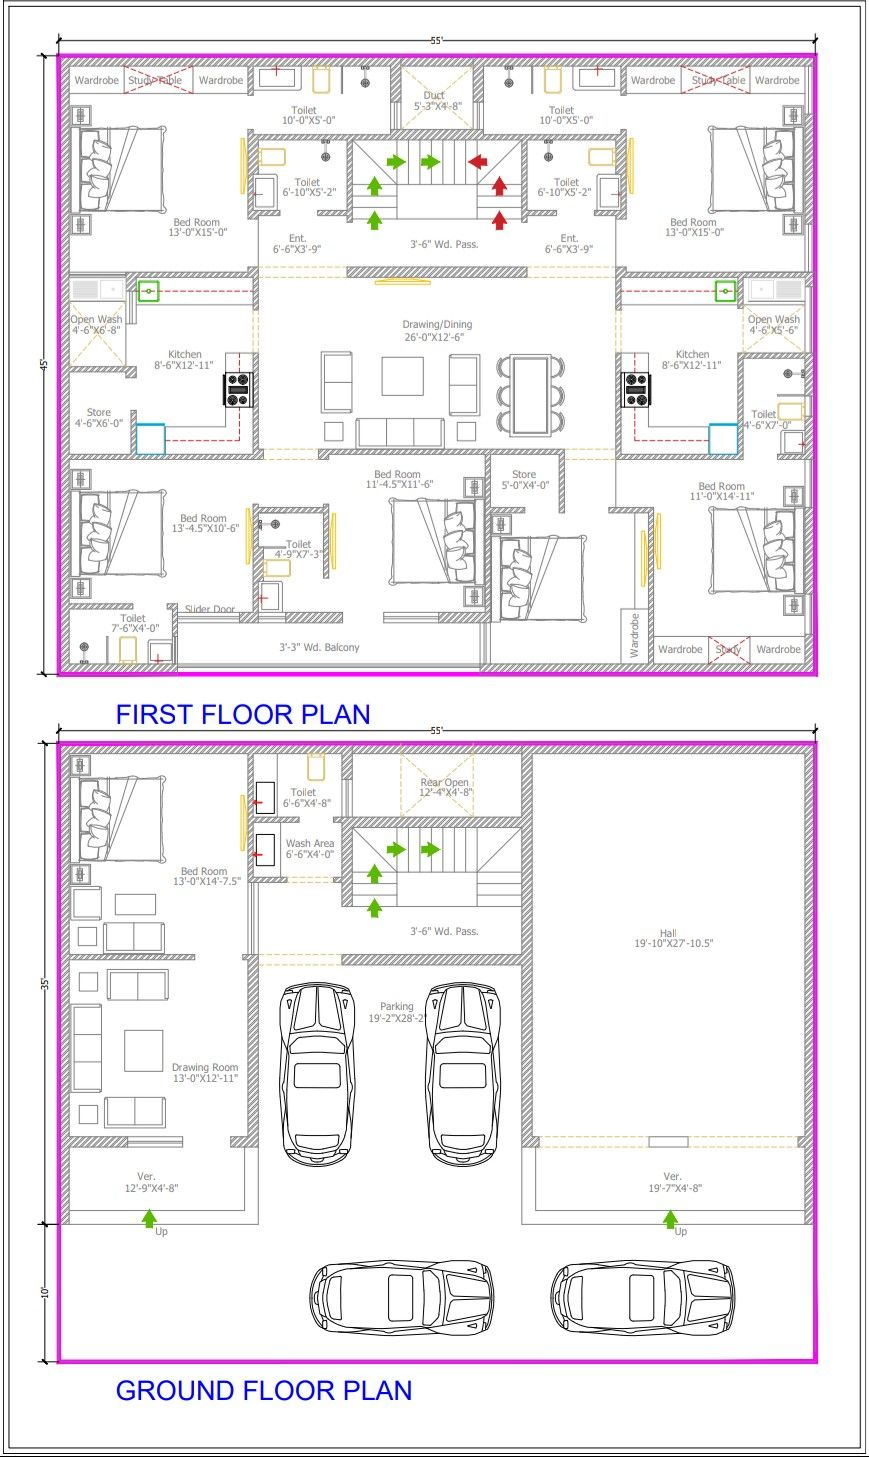 Pin By Richa Jain On Architecture In 2020 Indian House Plans Luxury House Plans House Map